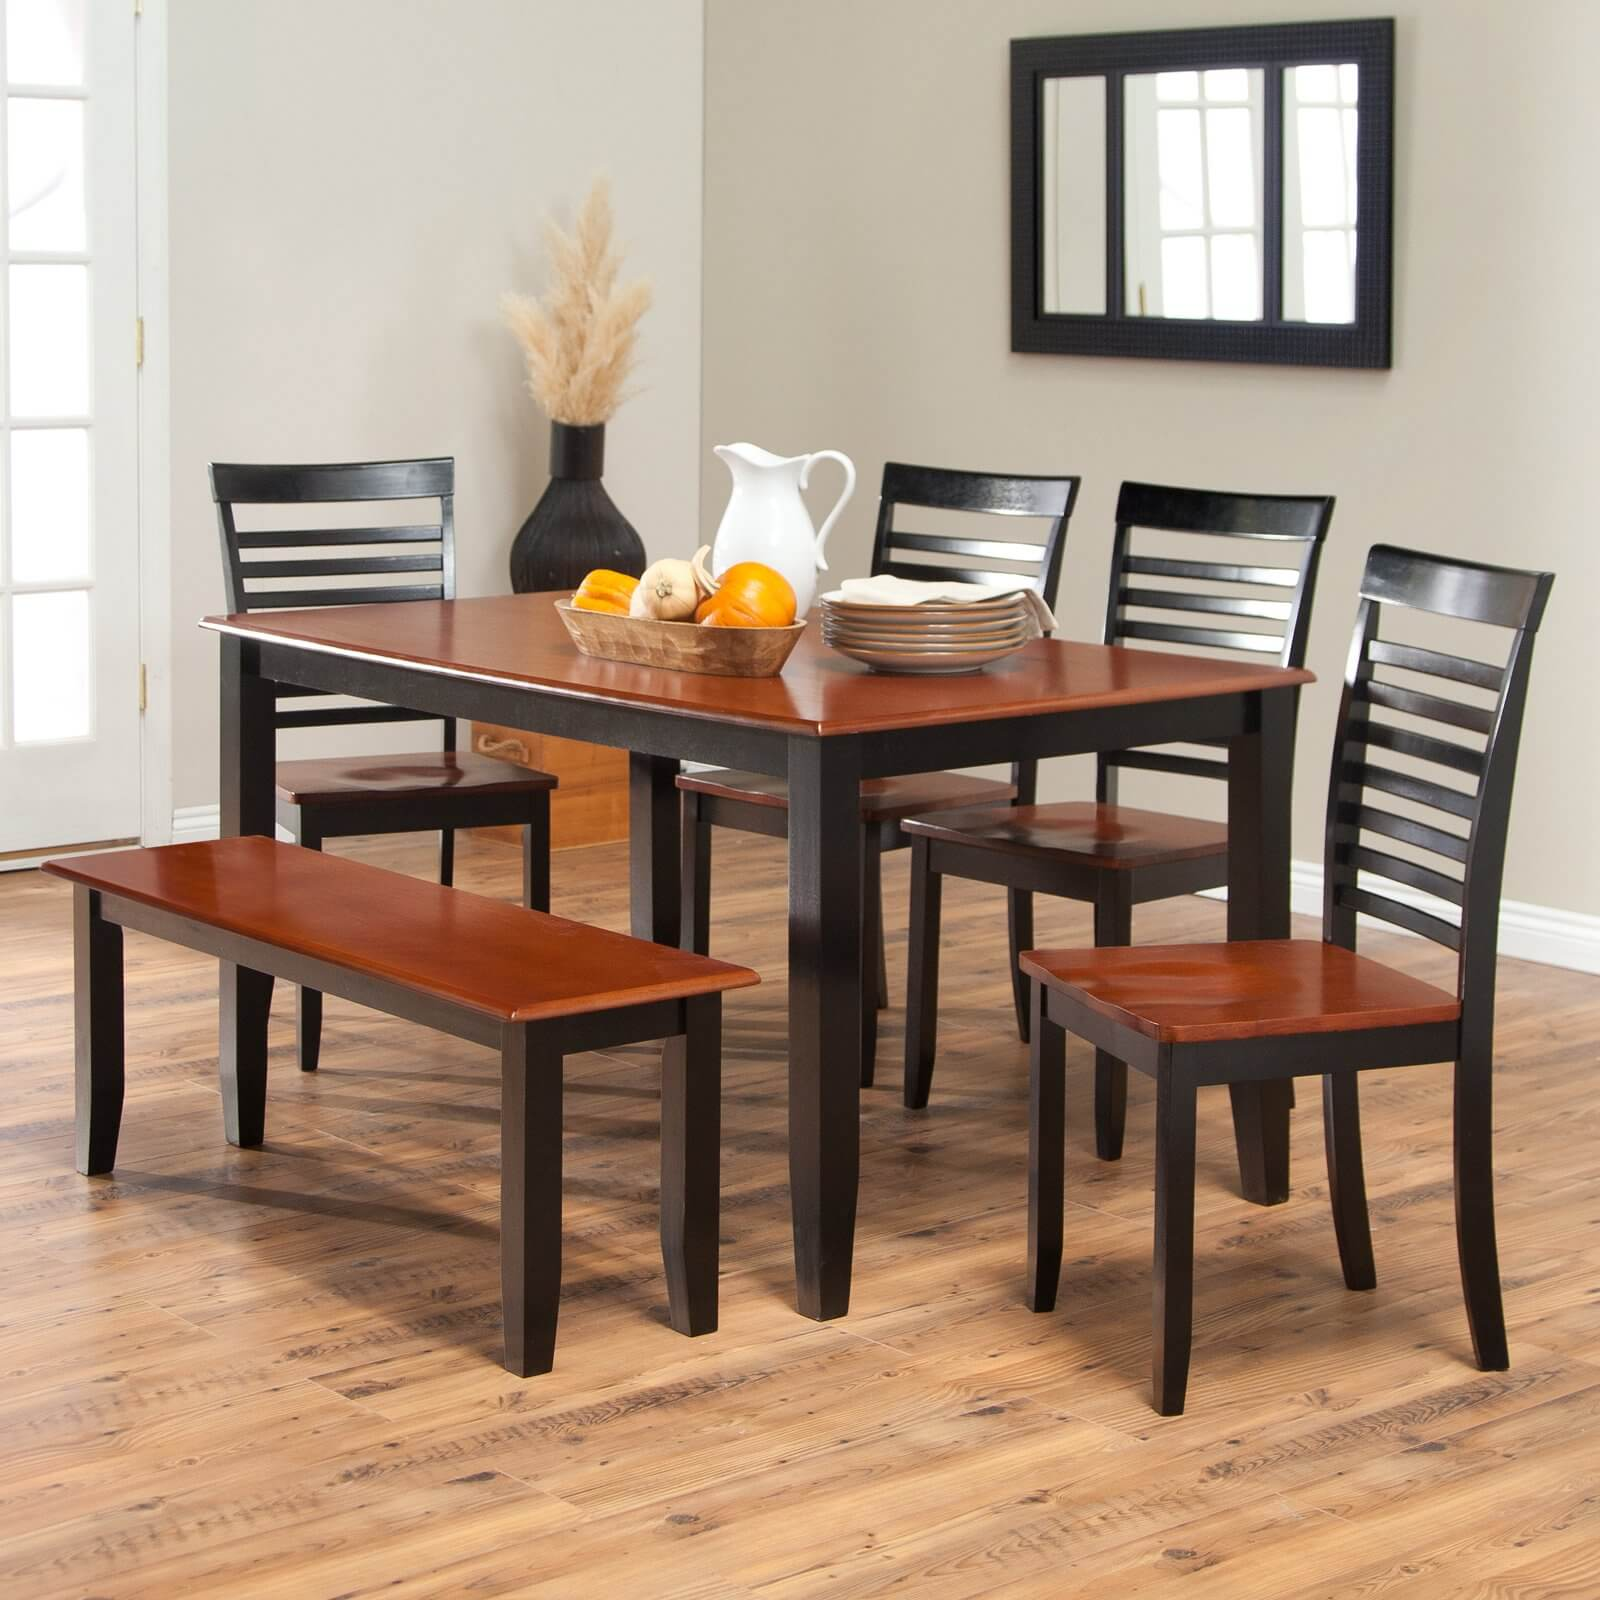 Two Toned Dining Room Sets Dining Sets For Two Global Market Dining Tables Sets Dining Sets